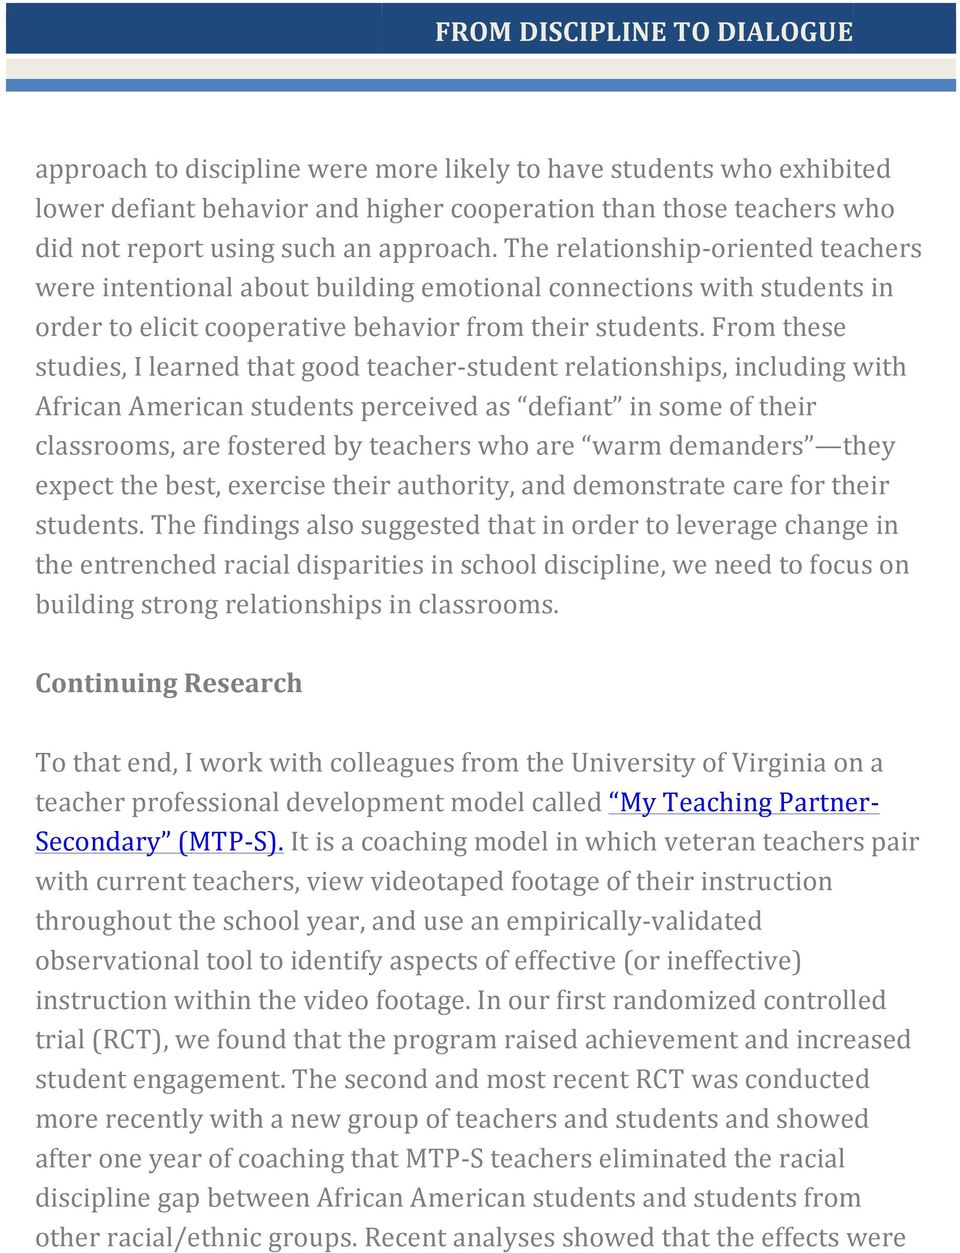 From these studies, I learned that good teacher- student relationships, including with African American students perceived as defiant in some of their classrooms, are fostered by teachers who are